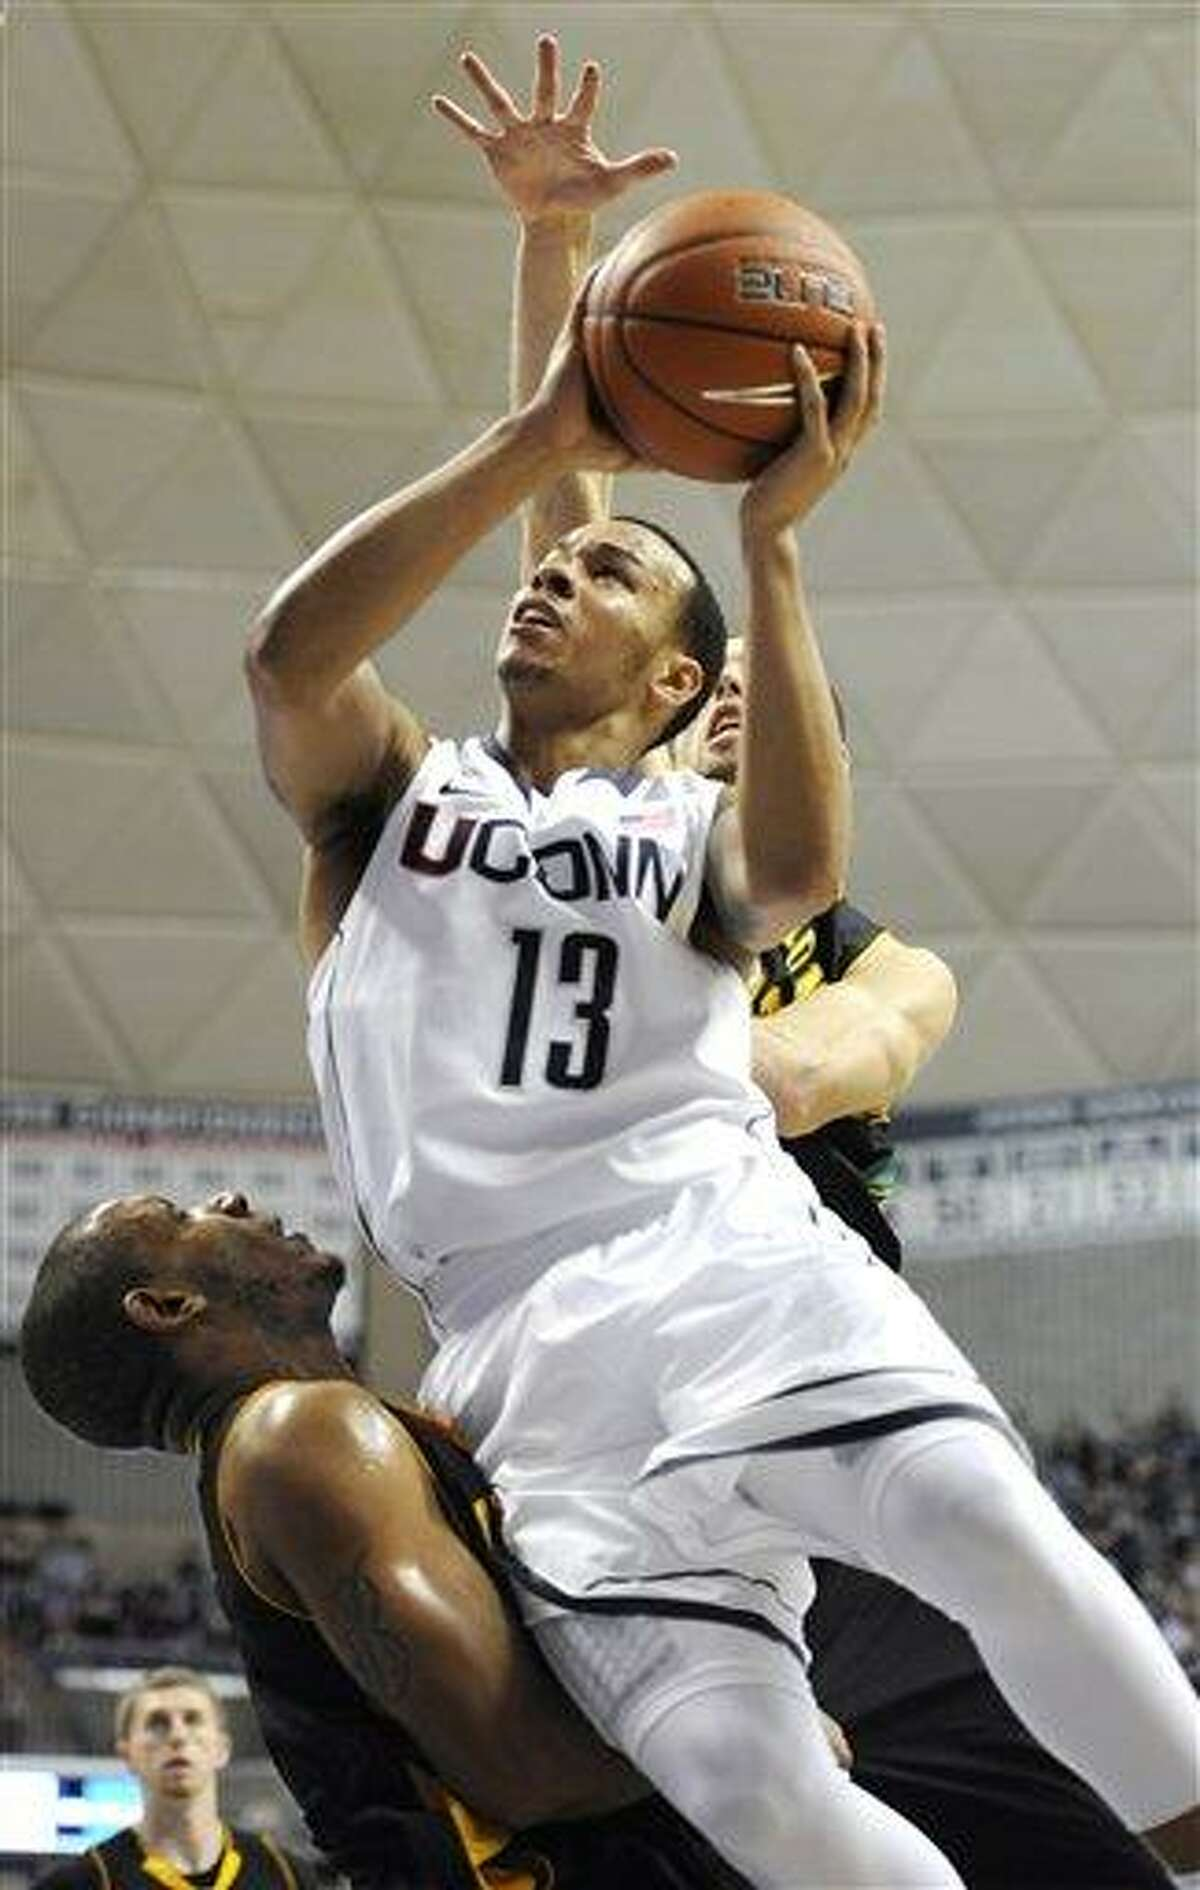 Connecticut's Shabazz Napier (13) shoots over Vermont's Trey Blue, bottom, in the second half of an NCAA basketball game in Storrs, Conn., Tuesday, Nov. 13, 2012. Vermont's Ethan O'Day, right, defends on the play. No. 23 Connecticut won 67-49. Napier scored 13 points. (AP Photo/Jessica Hill)